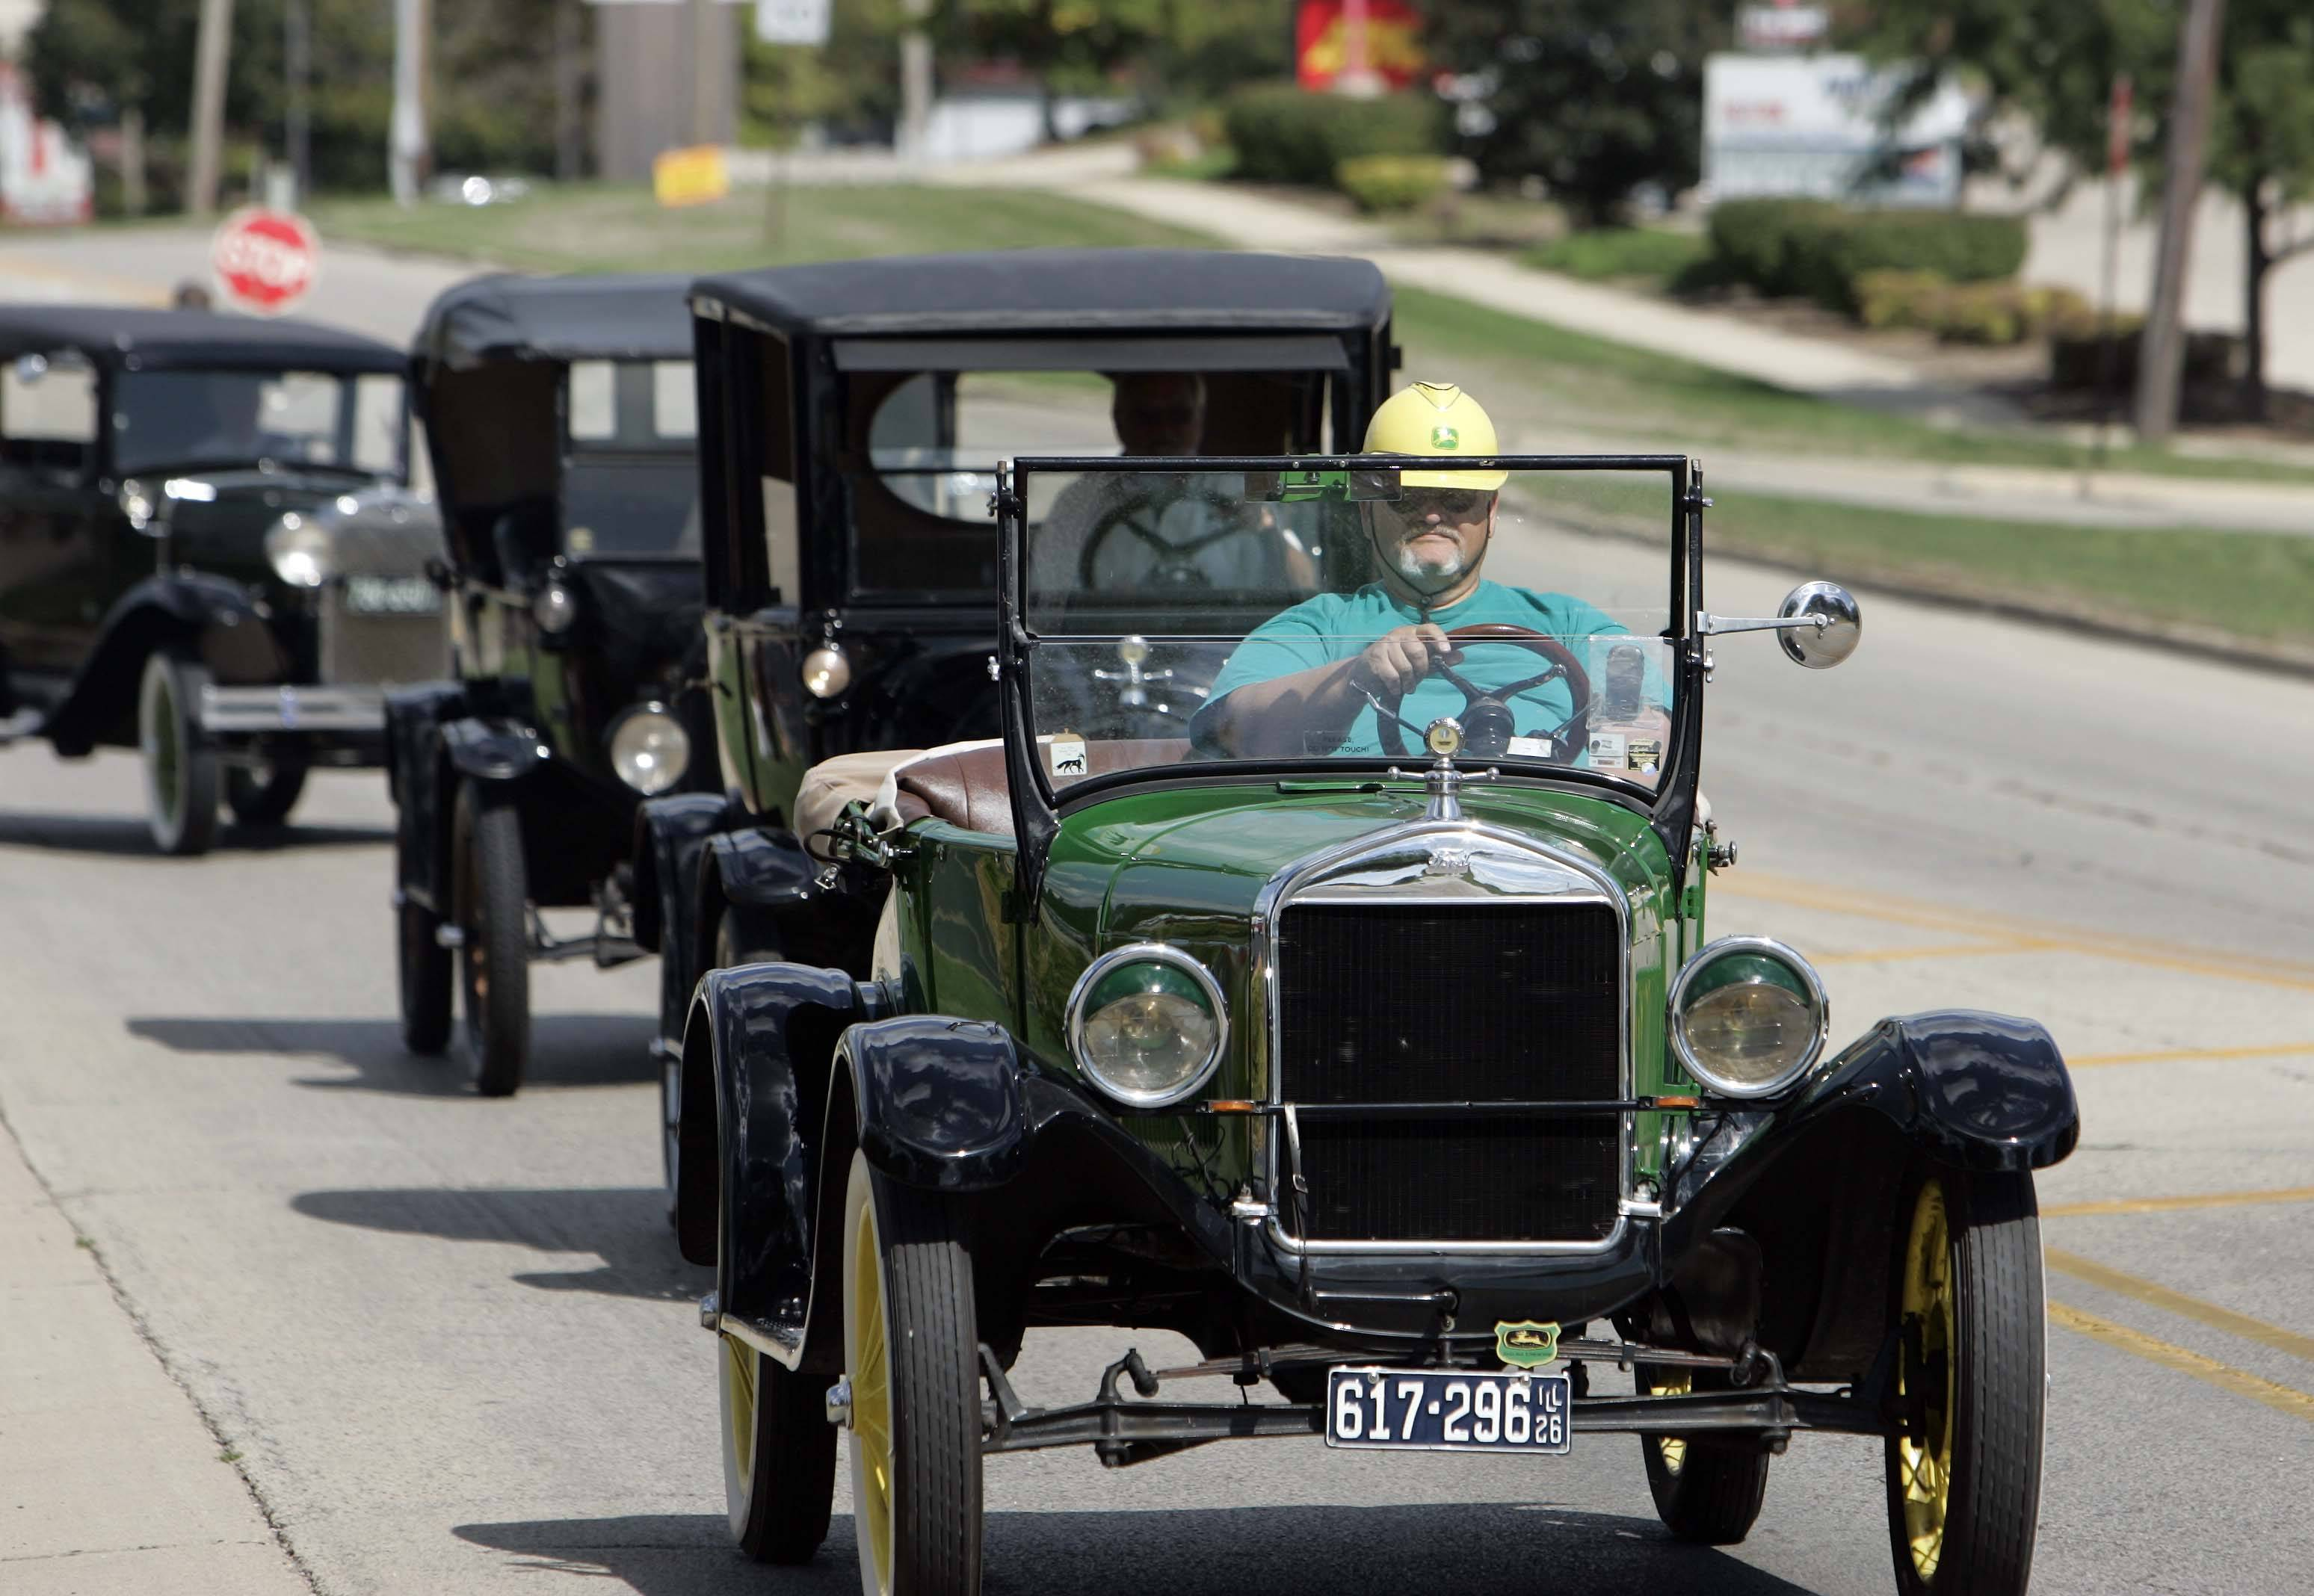 Maurice Dyer of Elgin leads the way in his 1926 Model T Roadster as the Elgin Road Race and Car Show leaves Sherman West Court on Larkin Avenue in Elgin for its tour of the original race route.